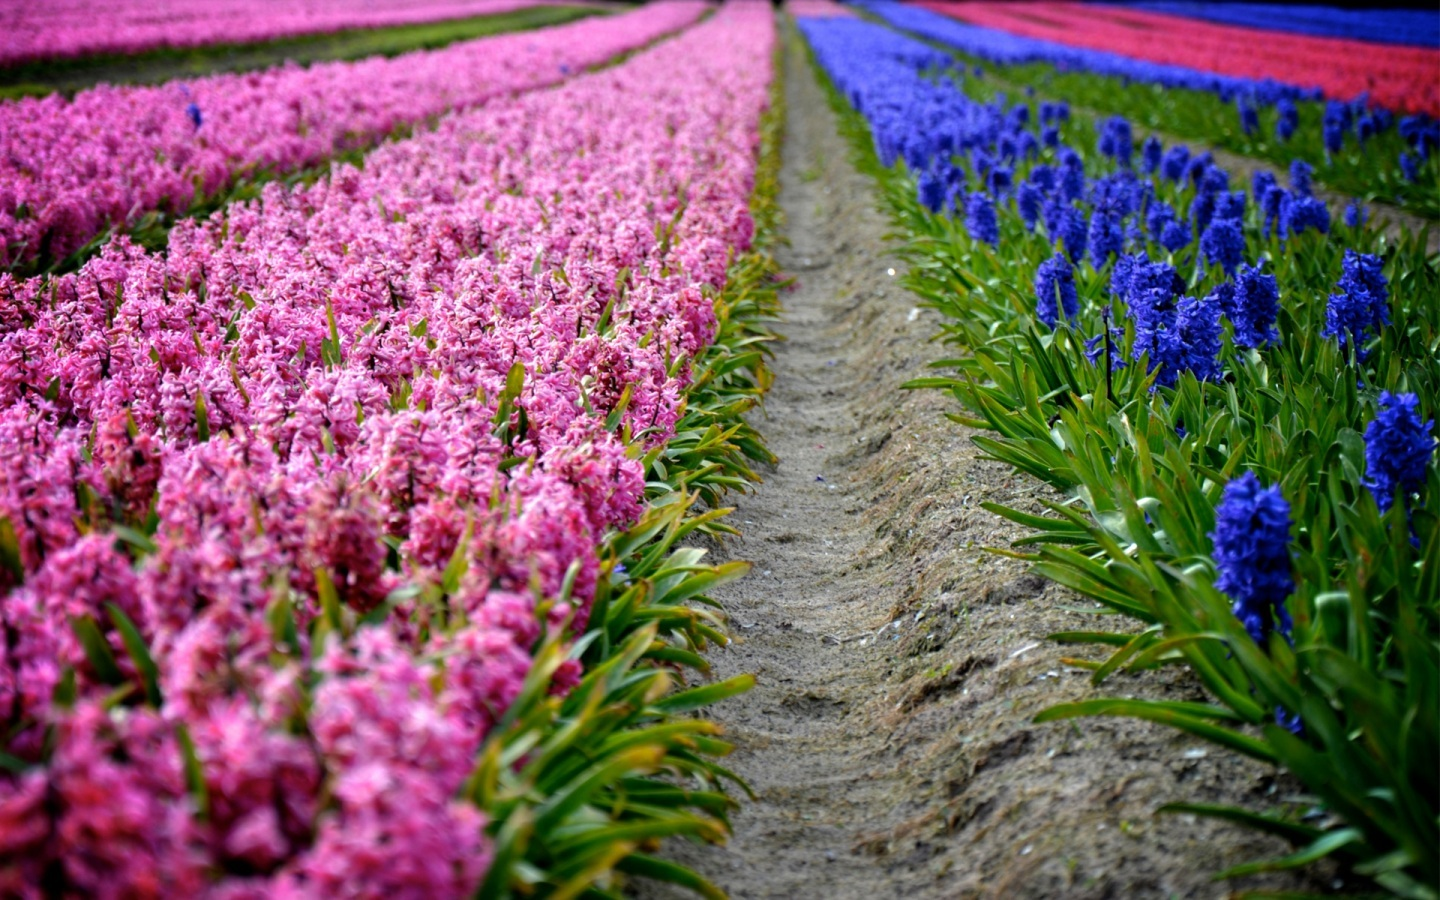 Spring Flowers Plantation Rows Hd Wallpapers High Definition 1440x900